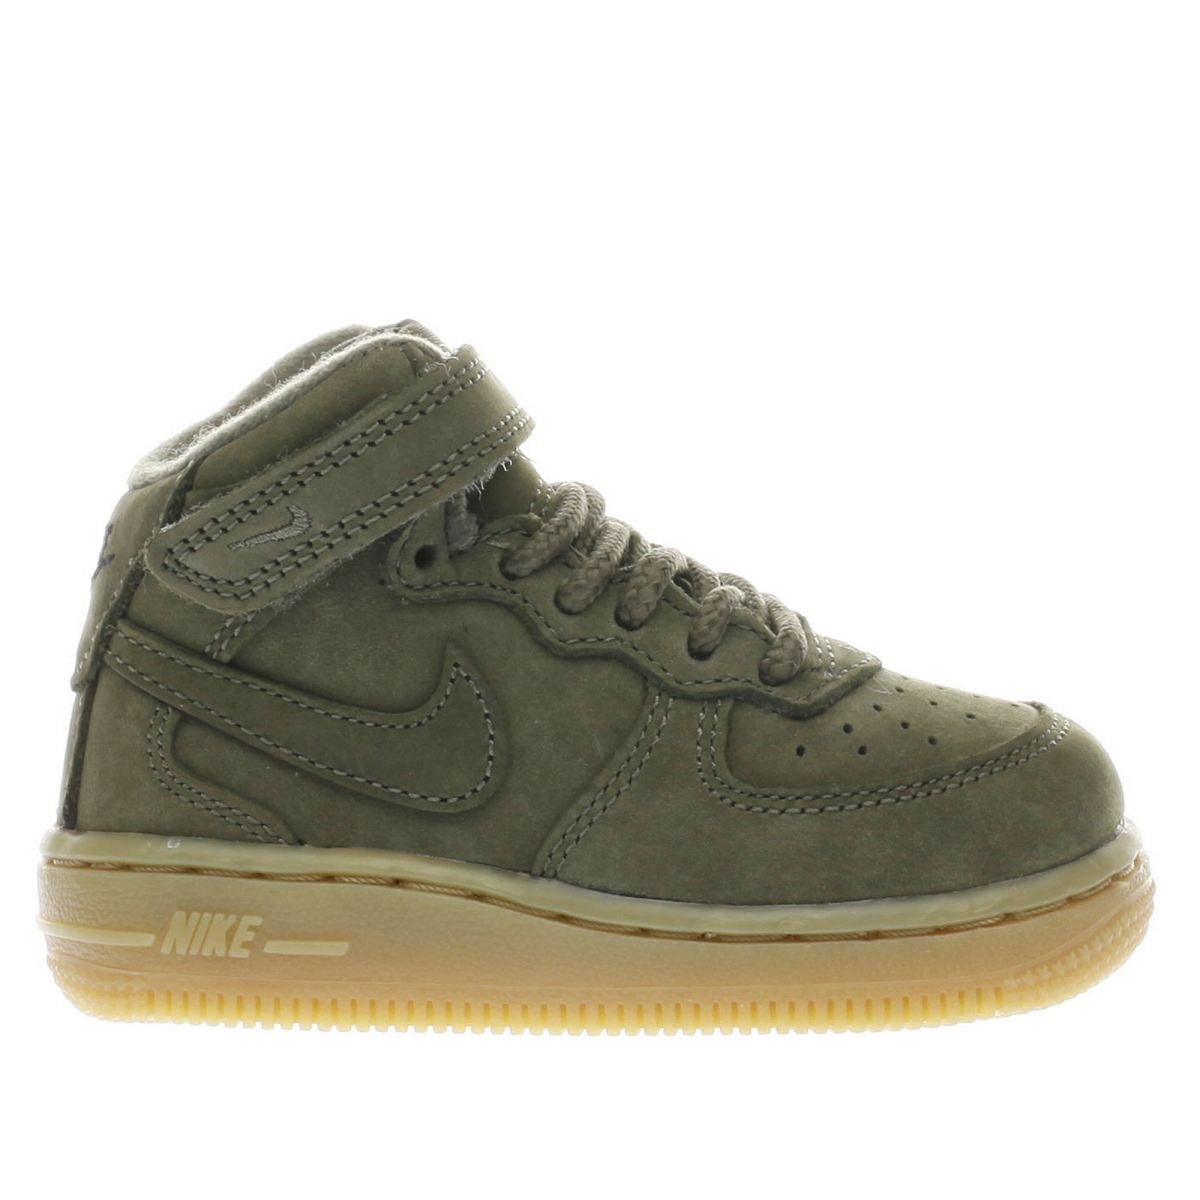 nike khaki air force 1 high wb Toddler Trainers